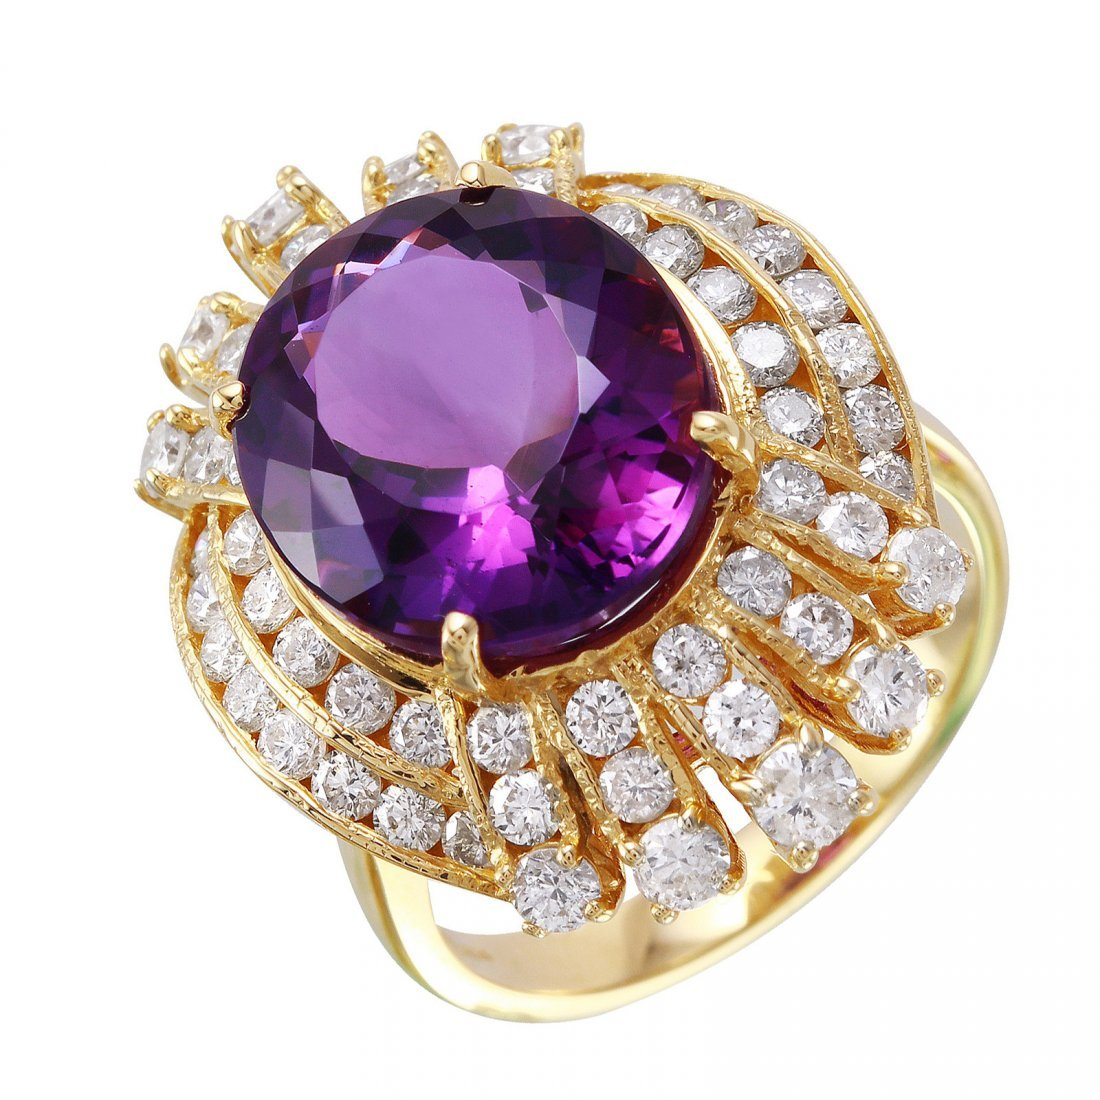 14KT Yellow Gold Amethyst and Diamond Ring - #1481